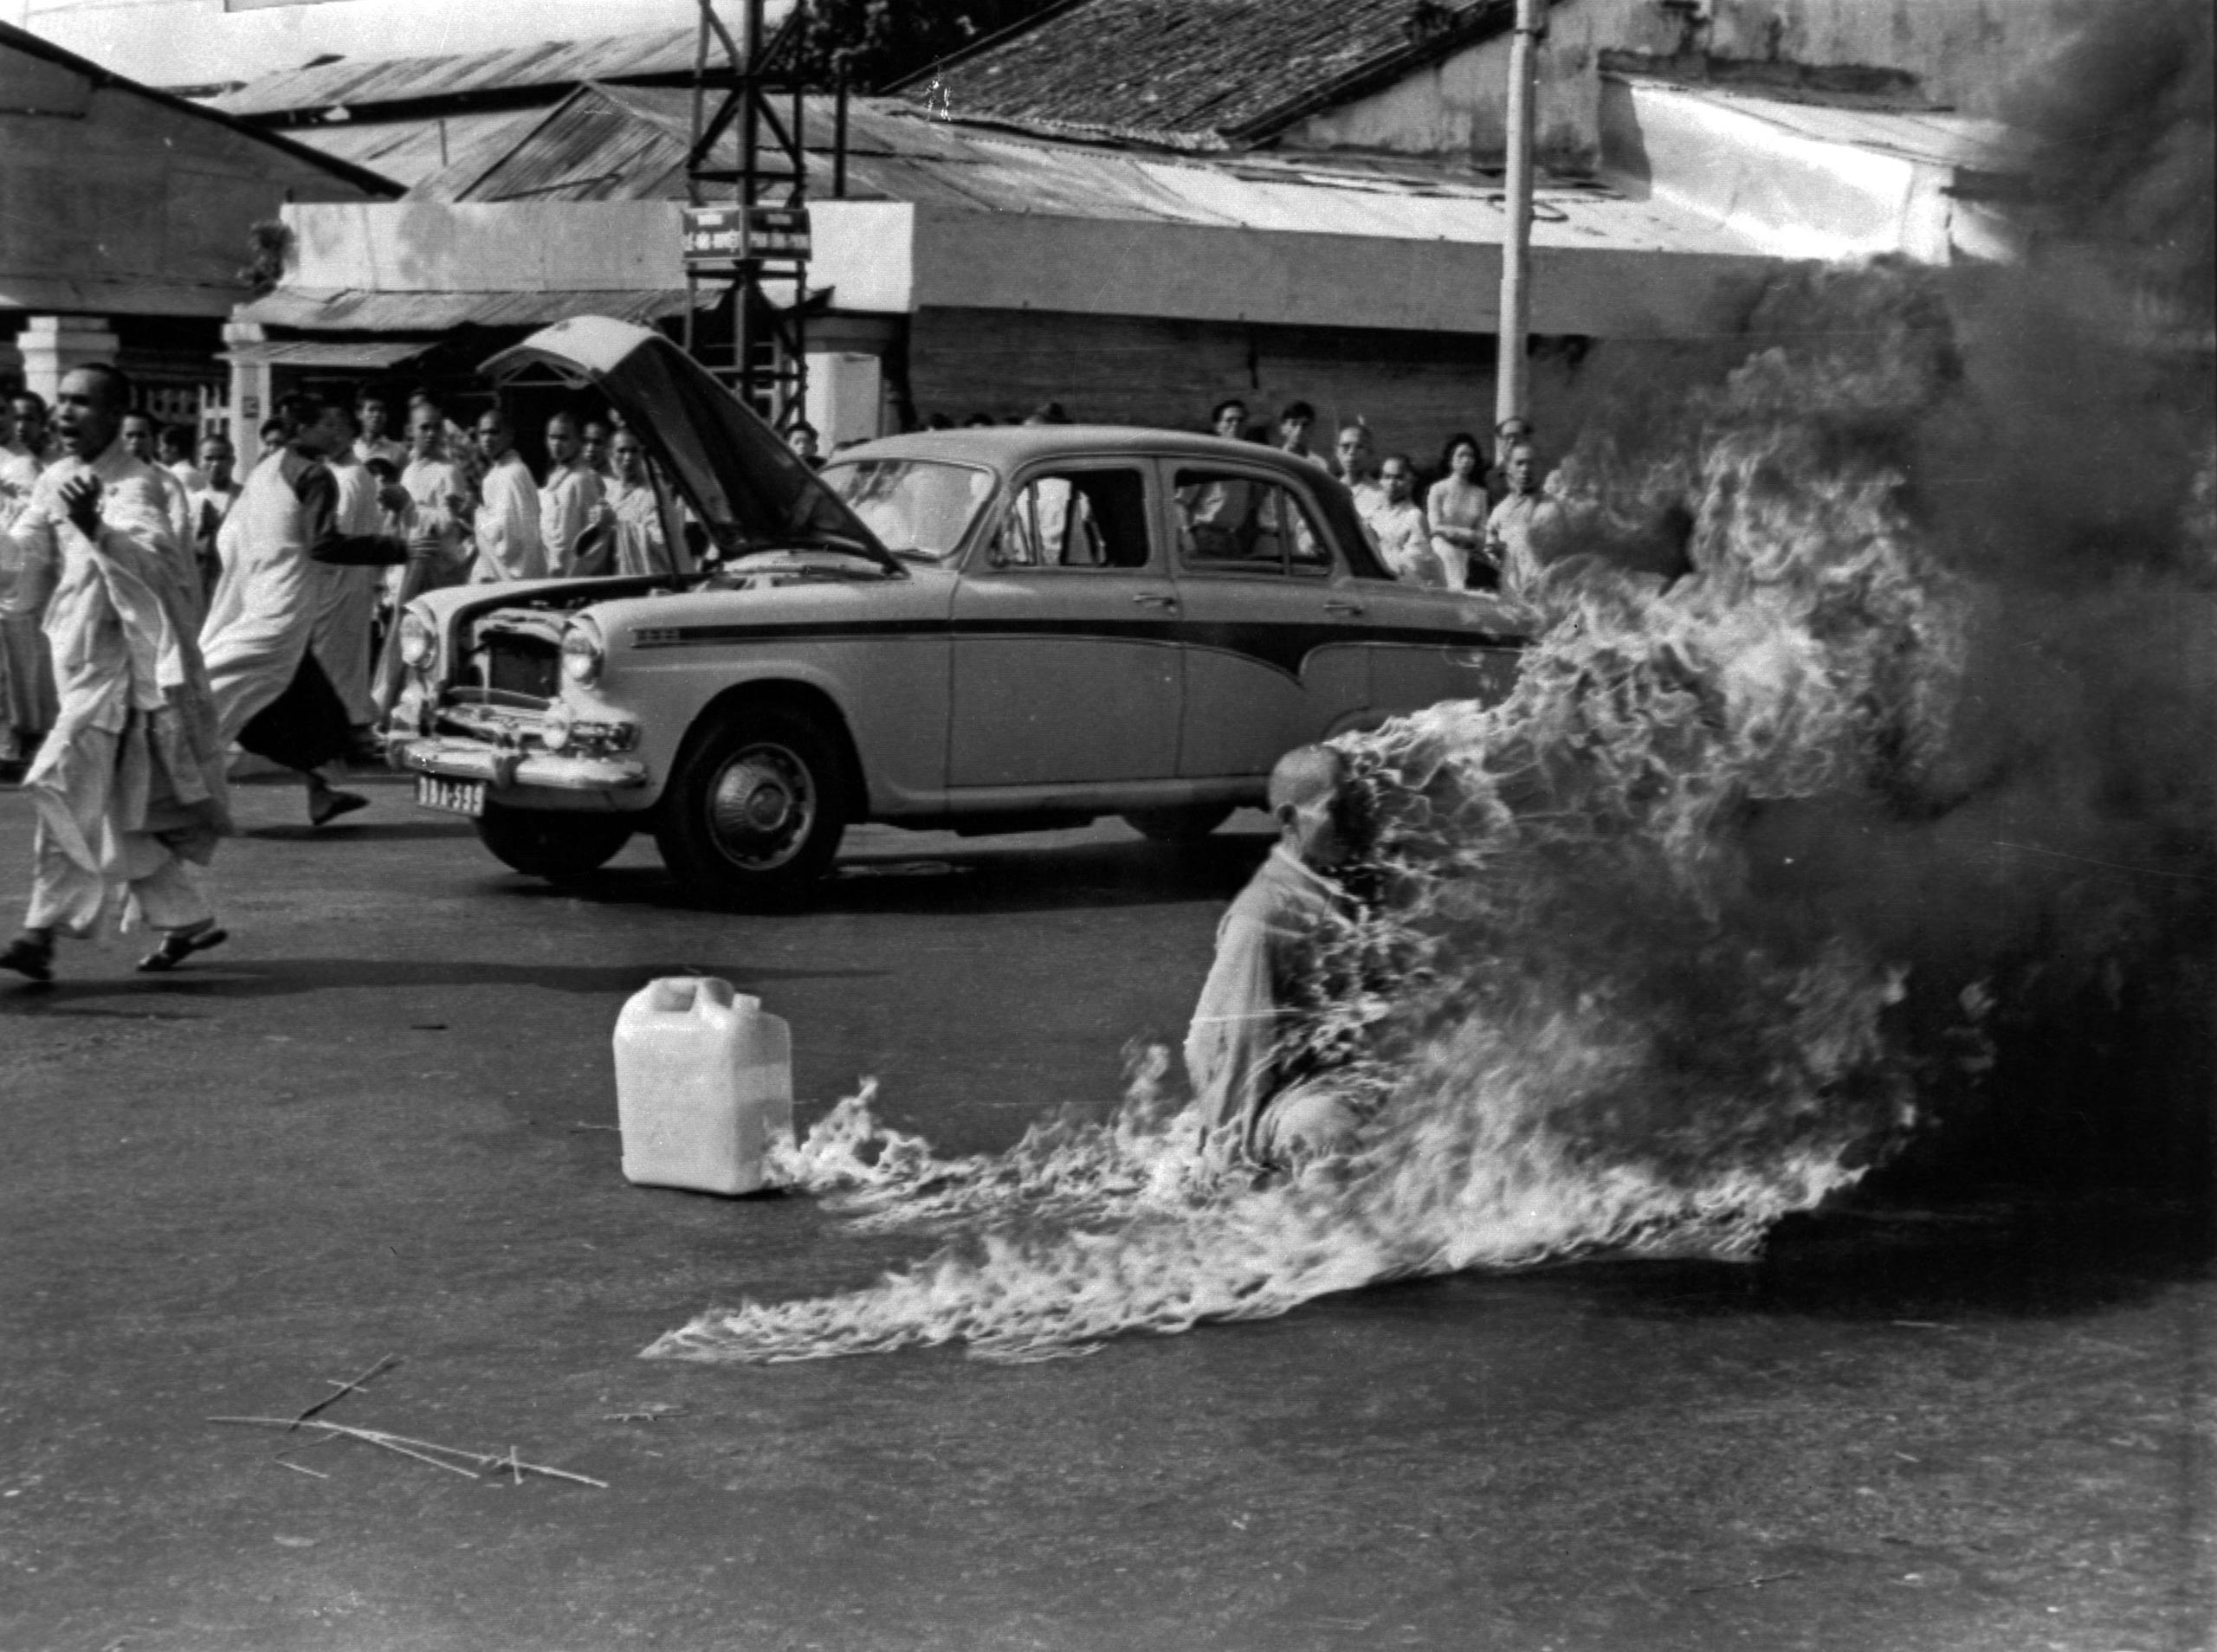 The Reverend Thich Quang Duc, a 73-year-old Buddhist monk, is soaked in petrol before setting fire to himself and burning to death in front of thousands of onlookers at a main highway intersection in Saigon on June 11, 1963.